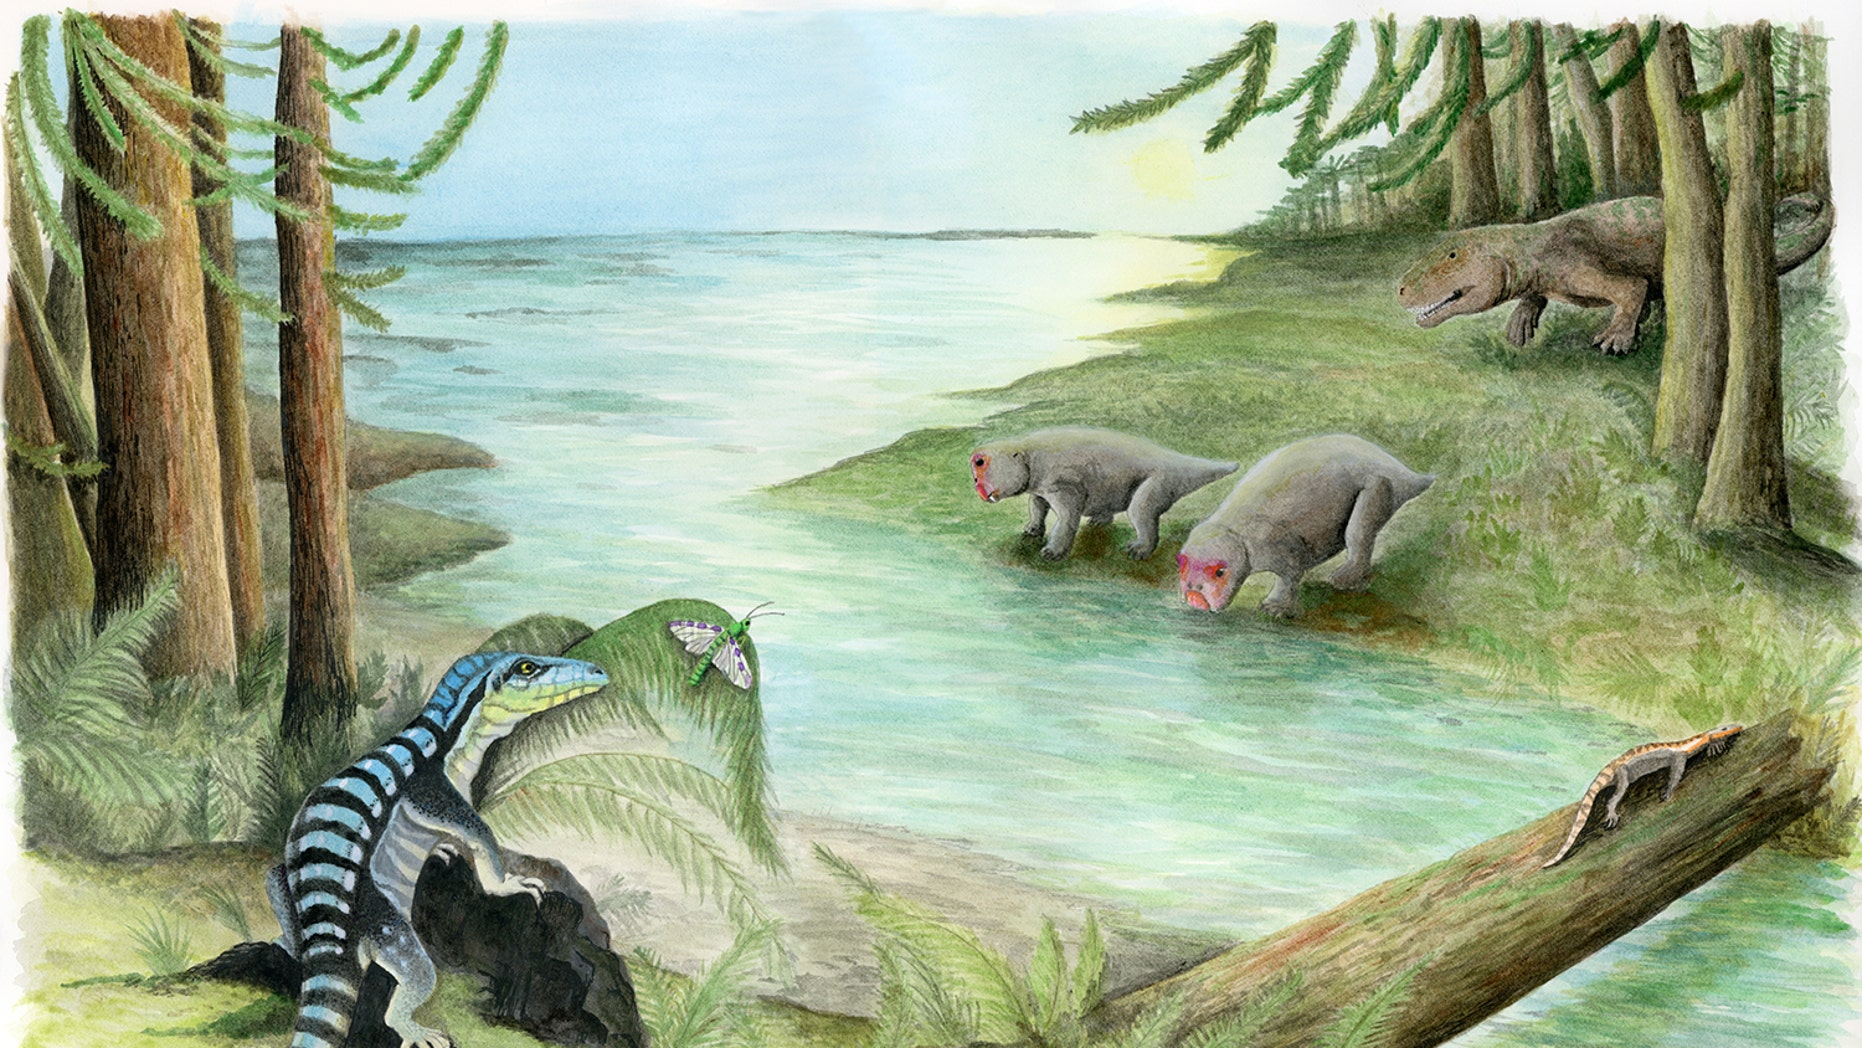 <i>Antarctanax shackletoni</i> stalks an insect on the bank of a river in Antarctica, during the Early Triassic.